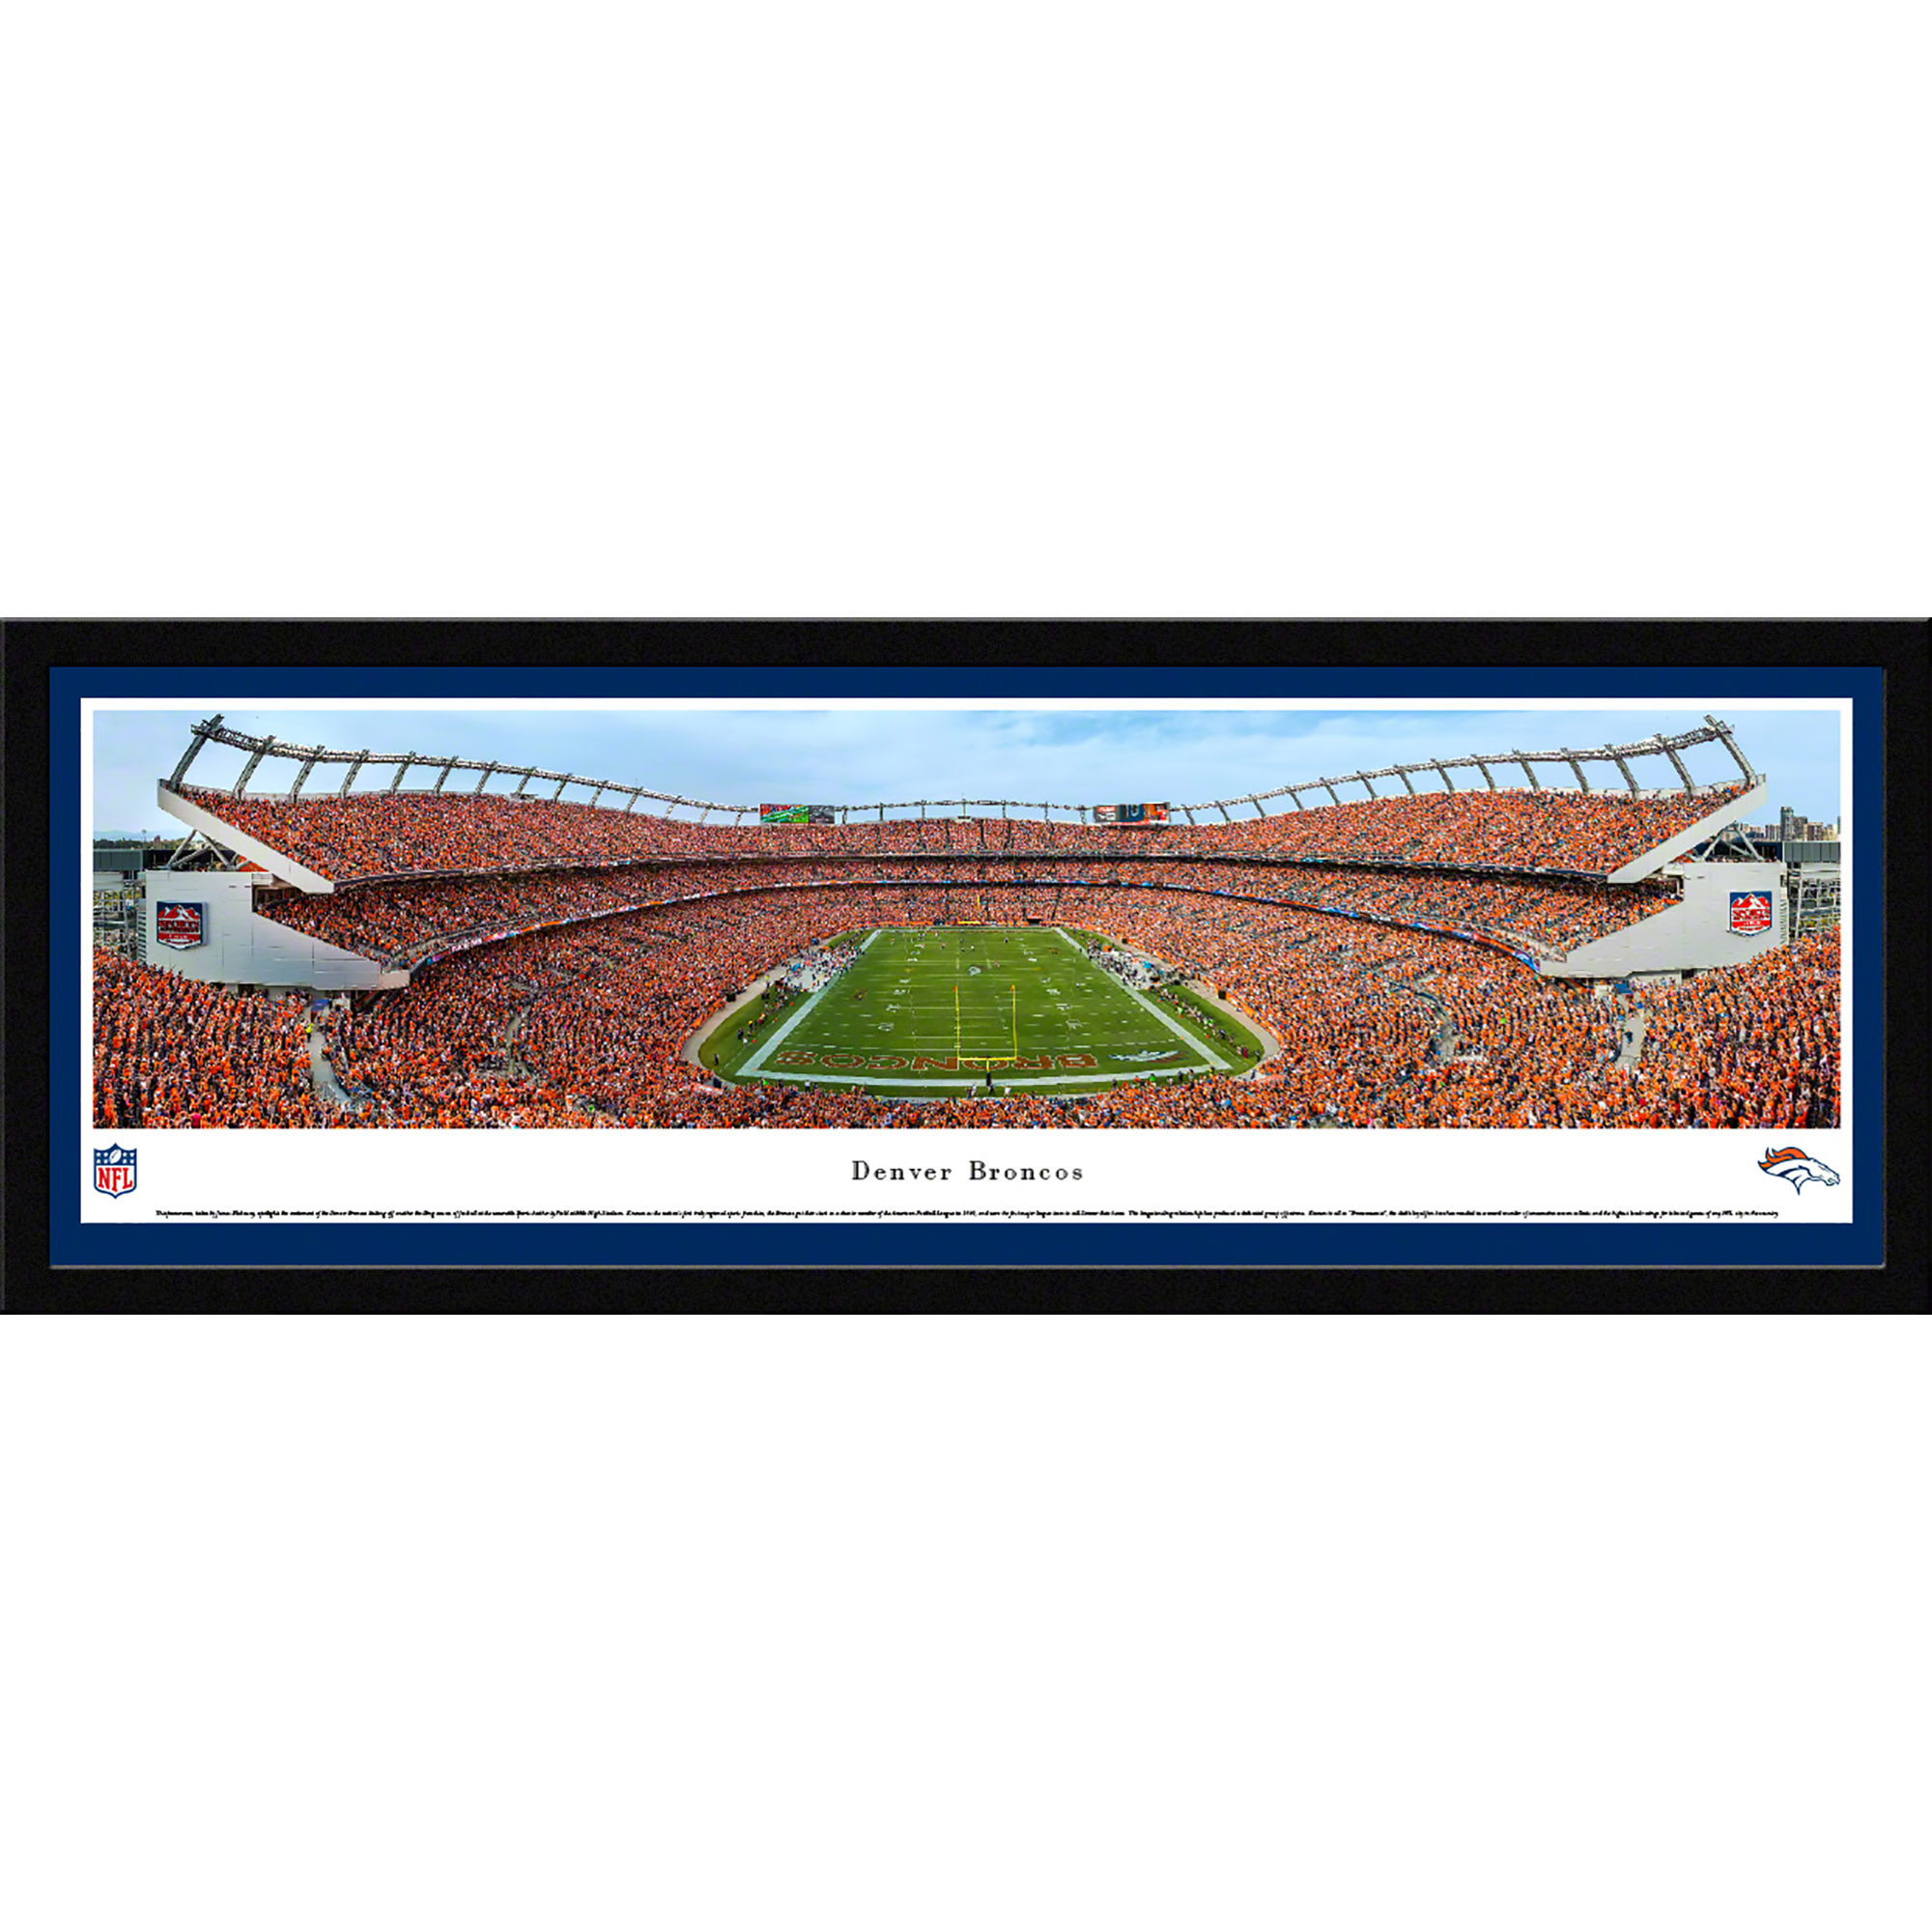 Denver Broncos - End Zone During A Night Game - Blakeway Panoramas NFL Print with Select Frame and Single Mat